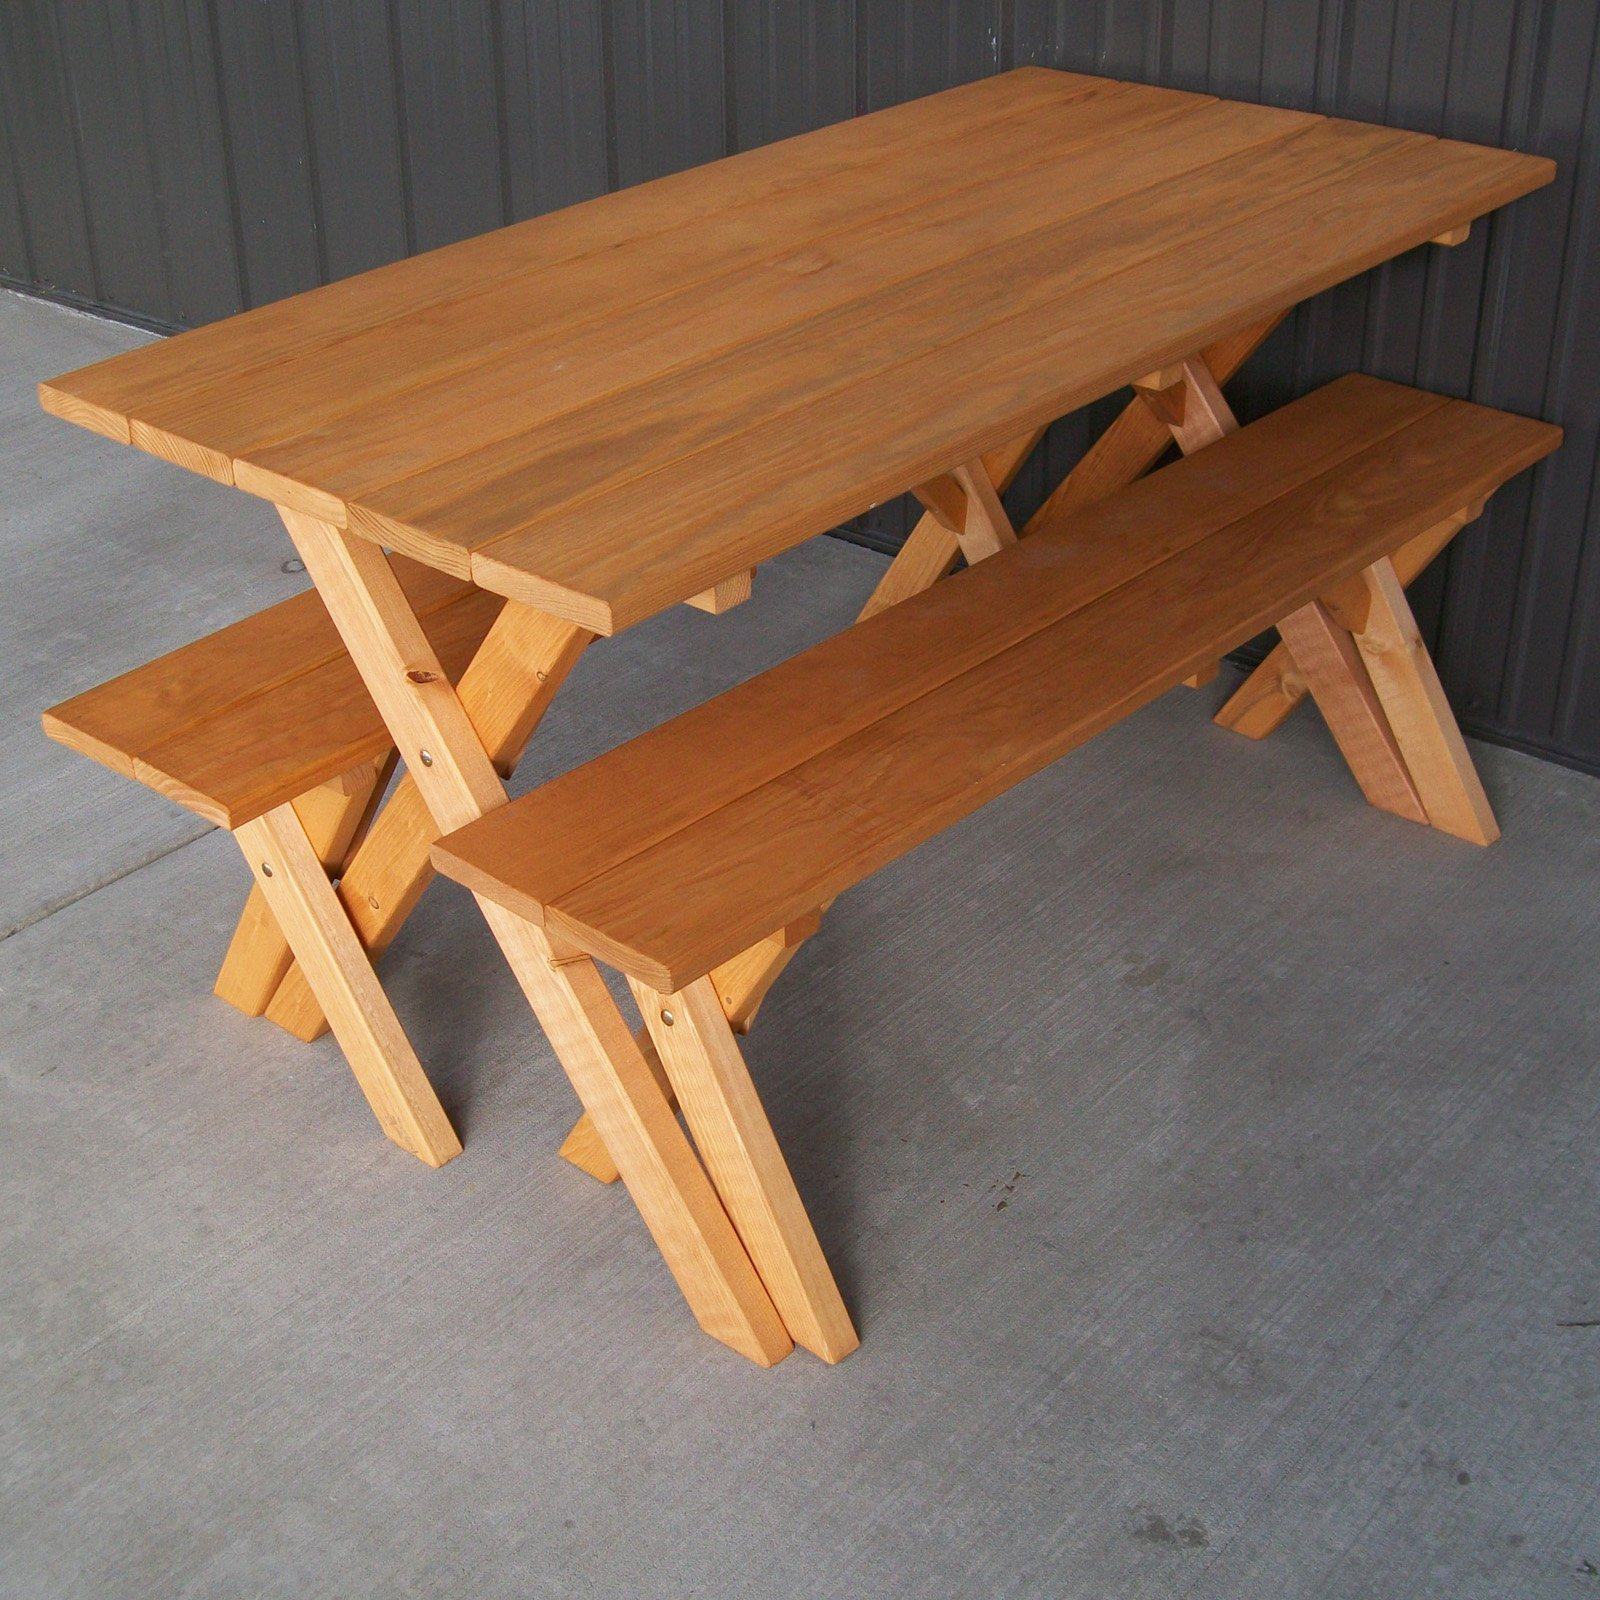 5' Economy Table w  2 Benches by A & L Furniture